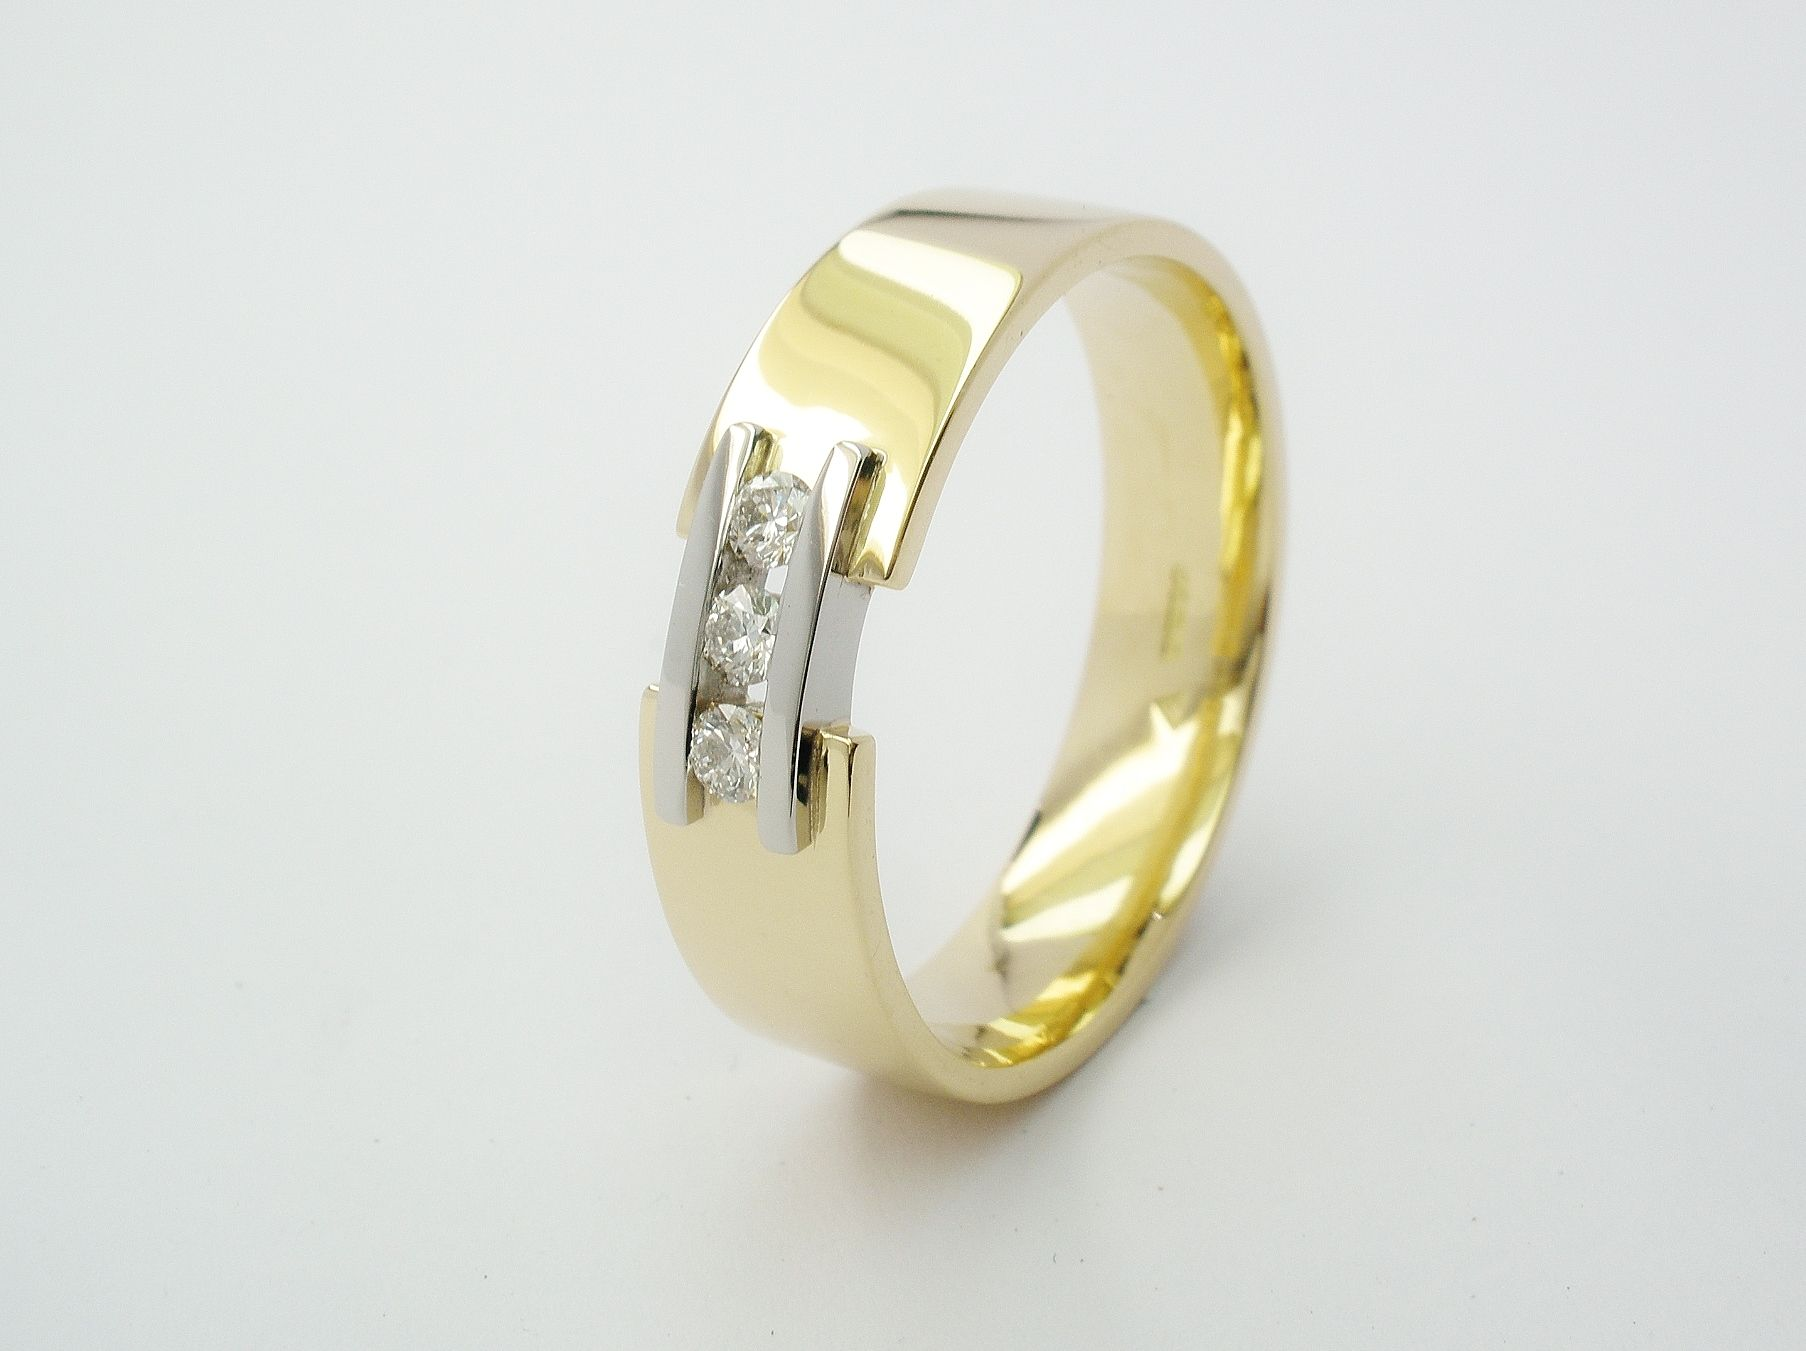 Diamond Gold Platinum Tram Line Gents Wedding Ring 18ct Yellow With A Pair Of Wires Inlayed Bridging